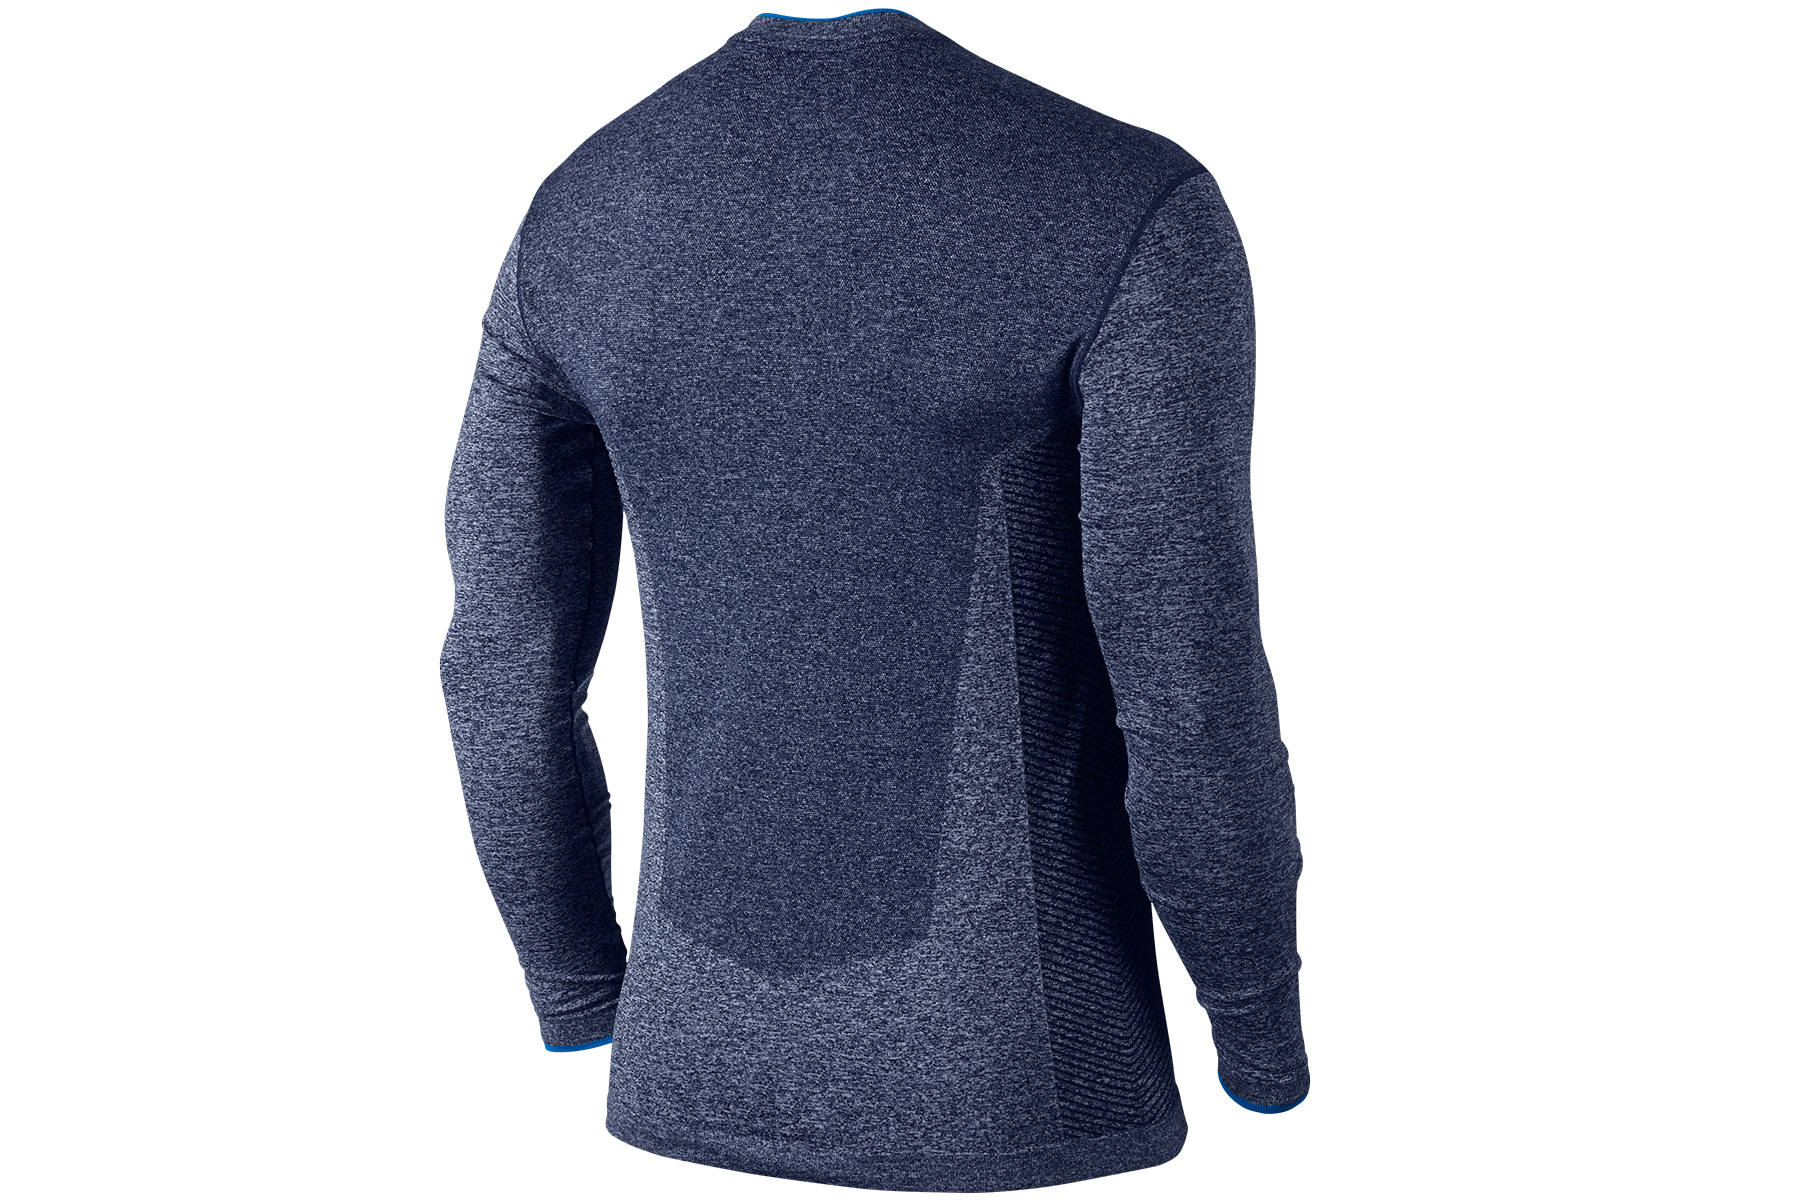 Knitting Wear Company : Nike golf dri fit knit v neck sweater from american